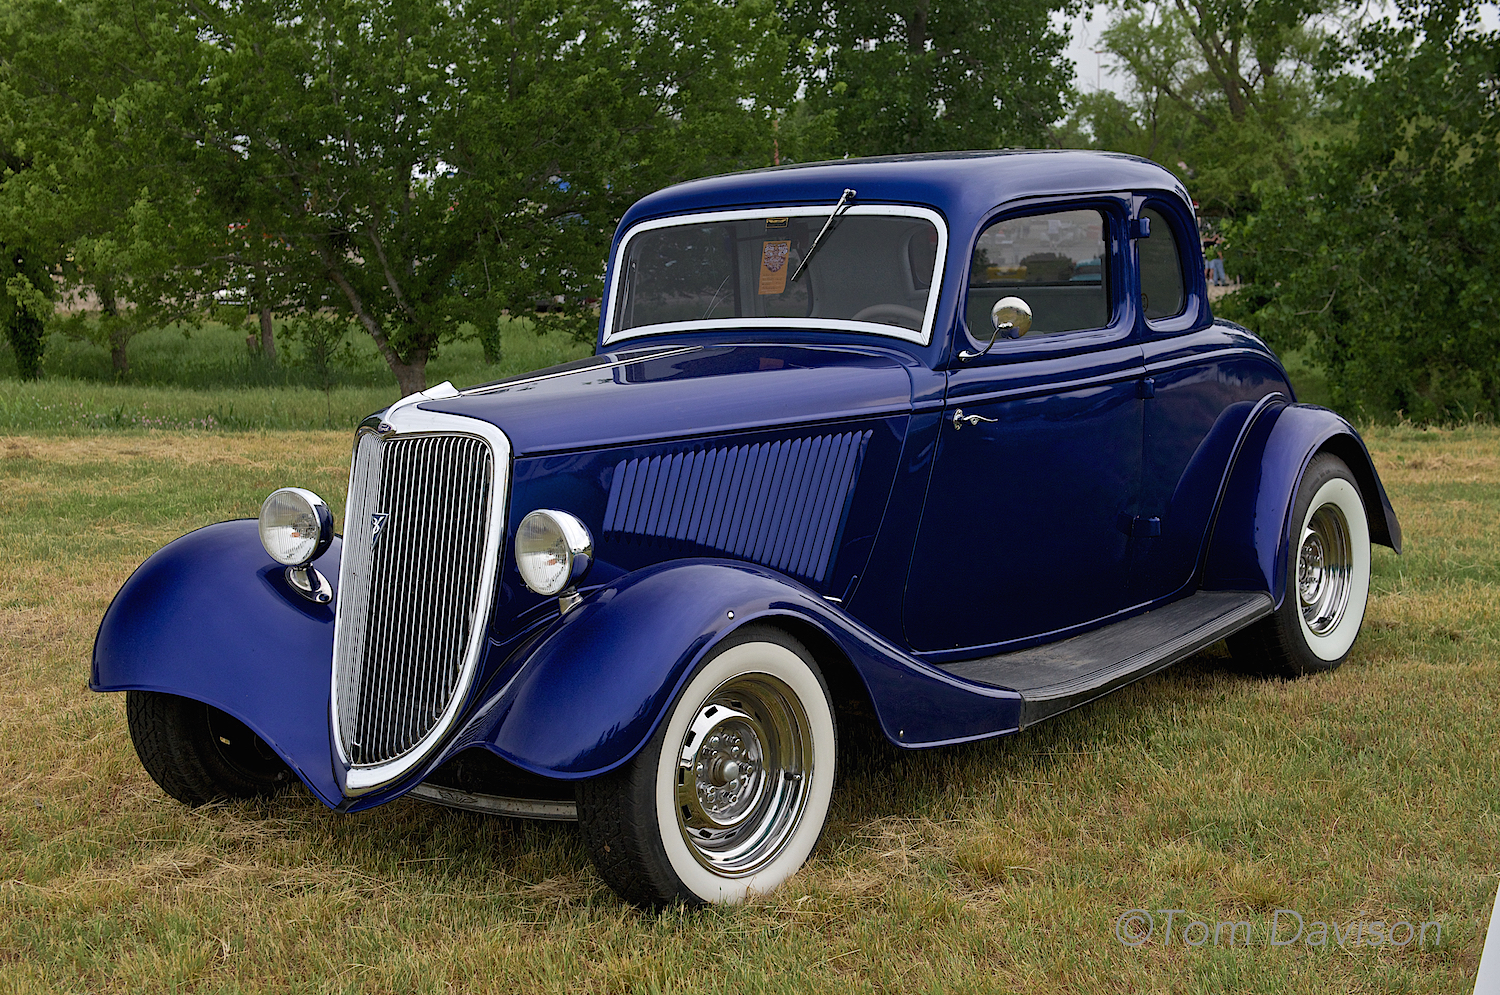 A 1934 Ford Coupe.